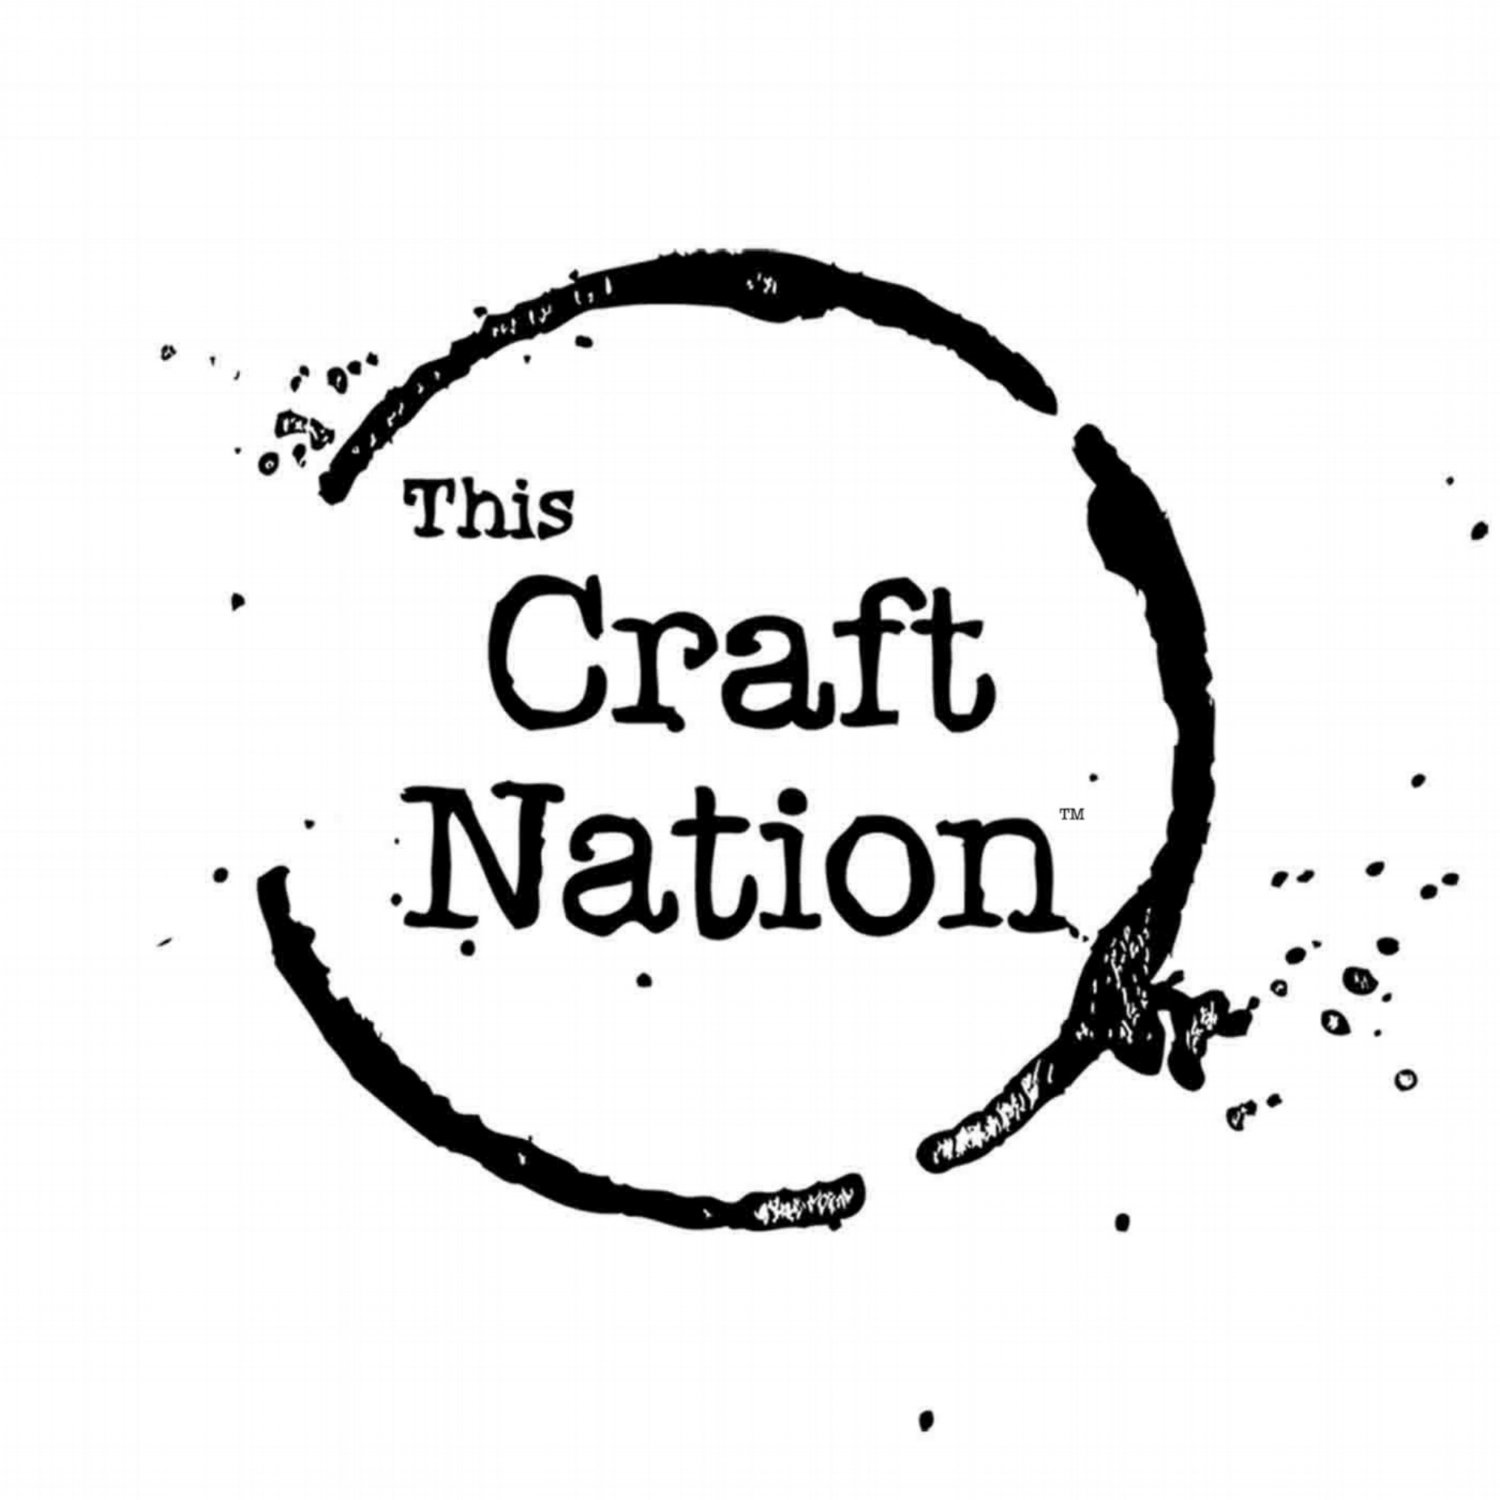 This Craft Nation